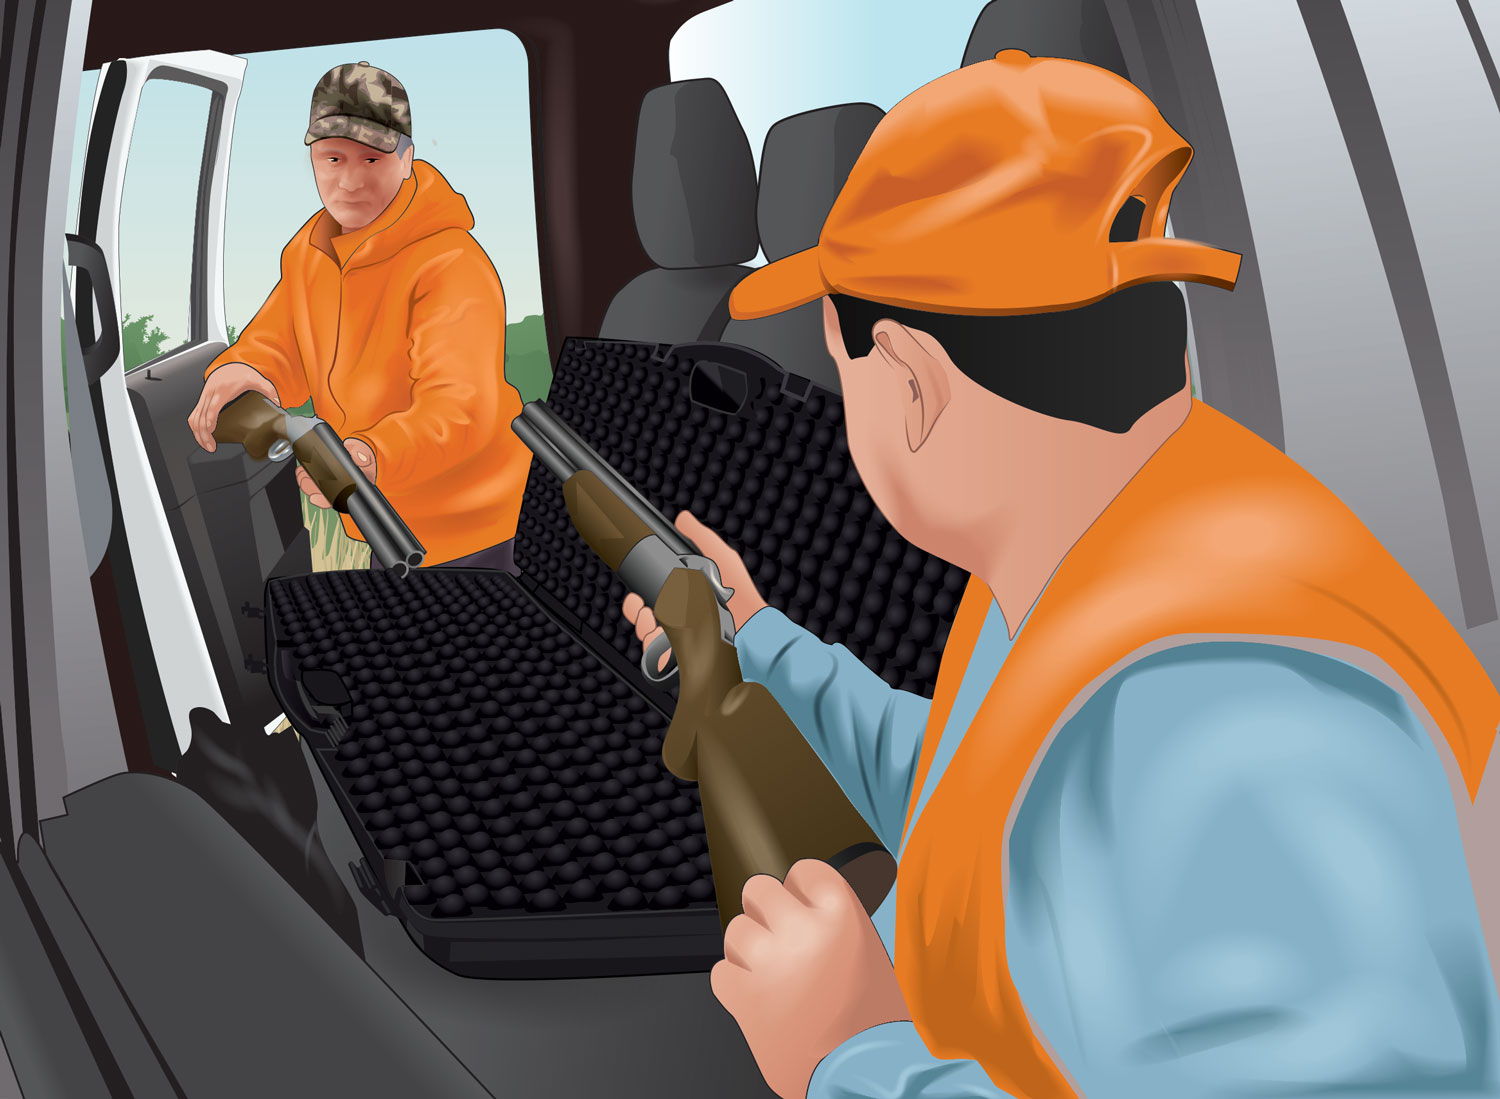 Two hunters unsafely pointing the muzzles of their firearms at each other while putting them in the vehicle